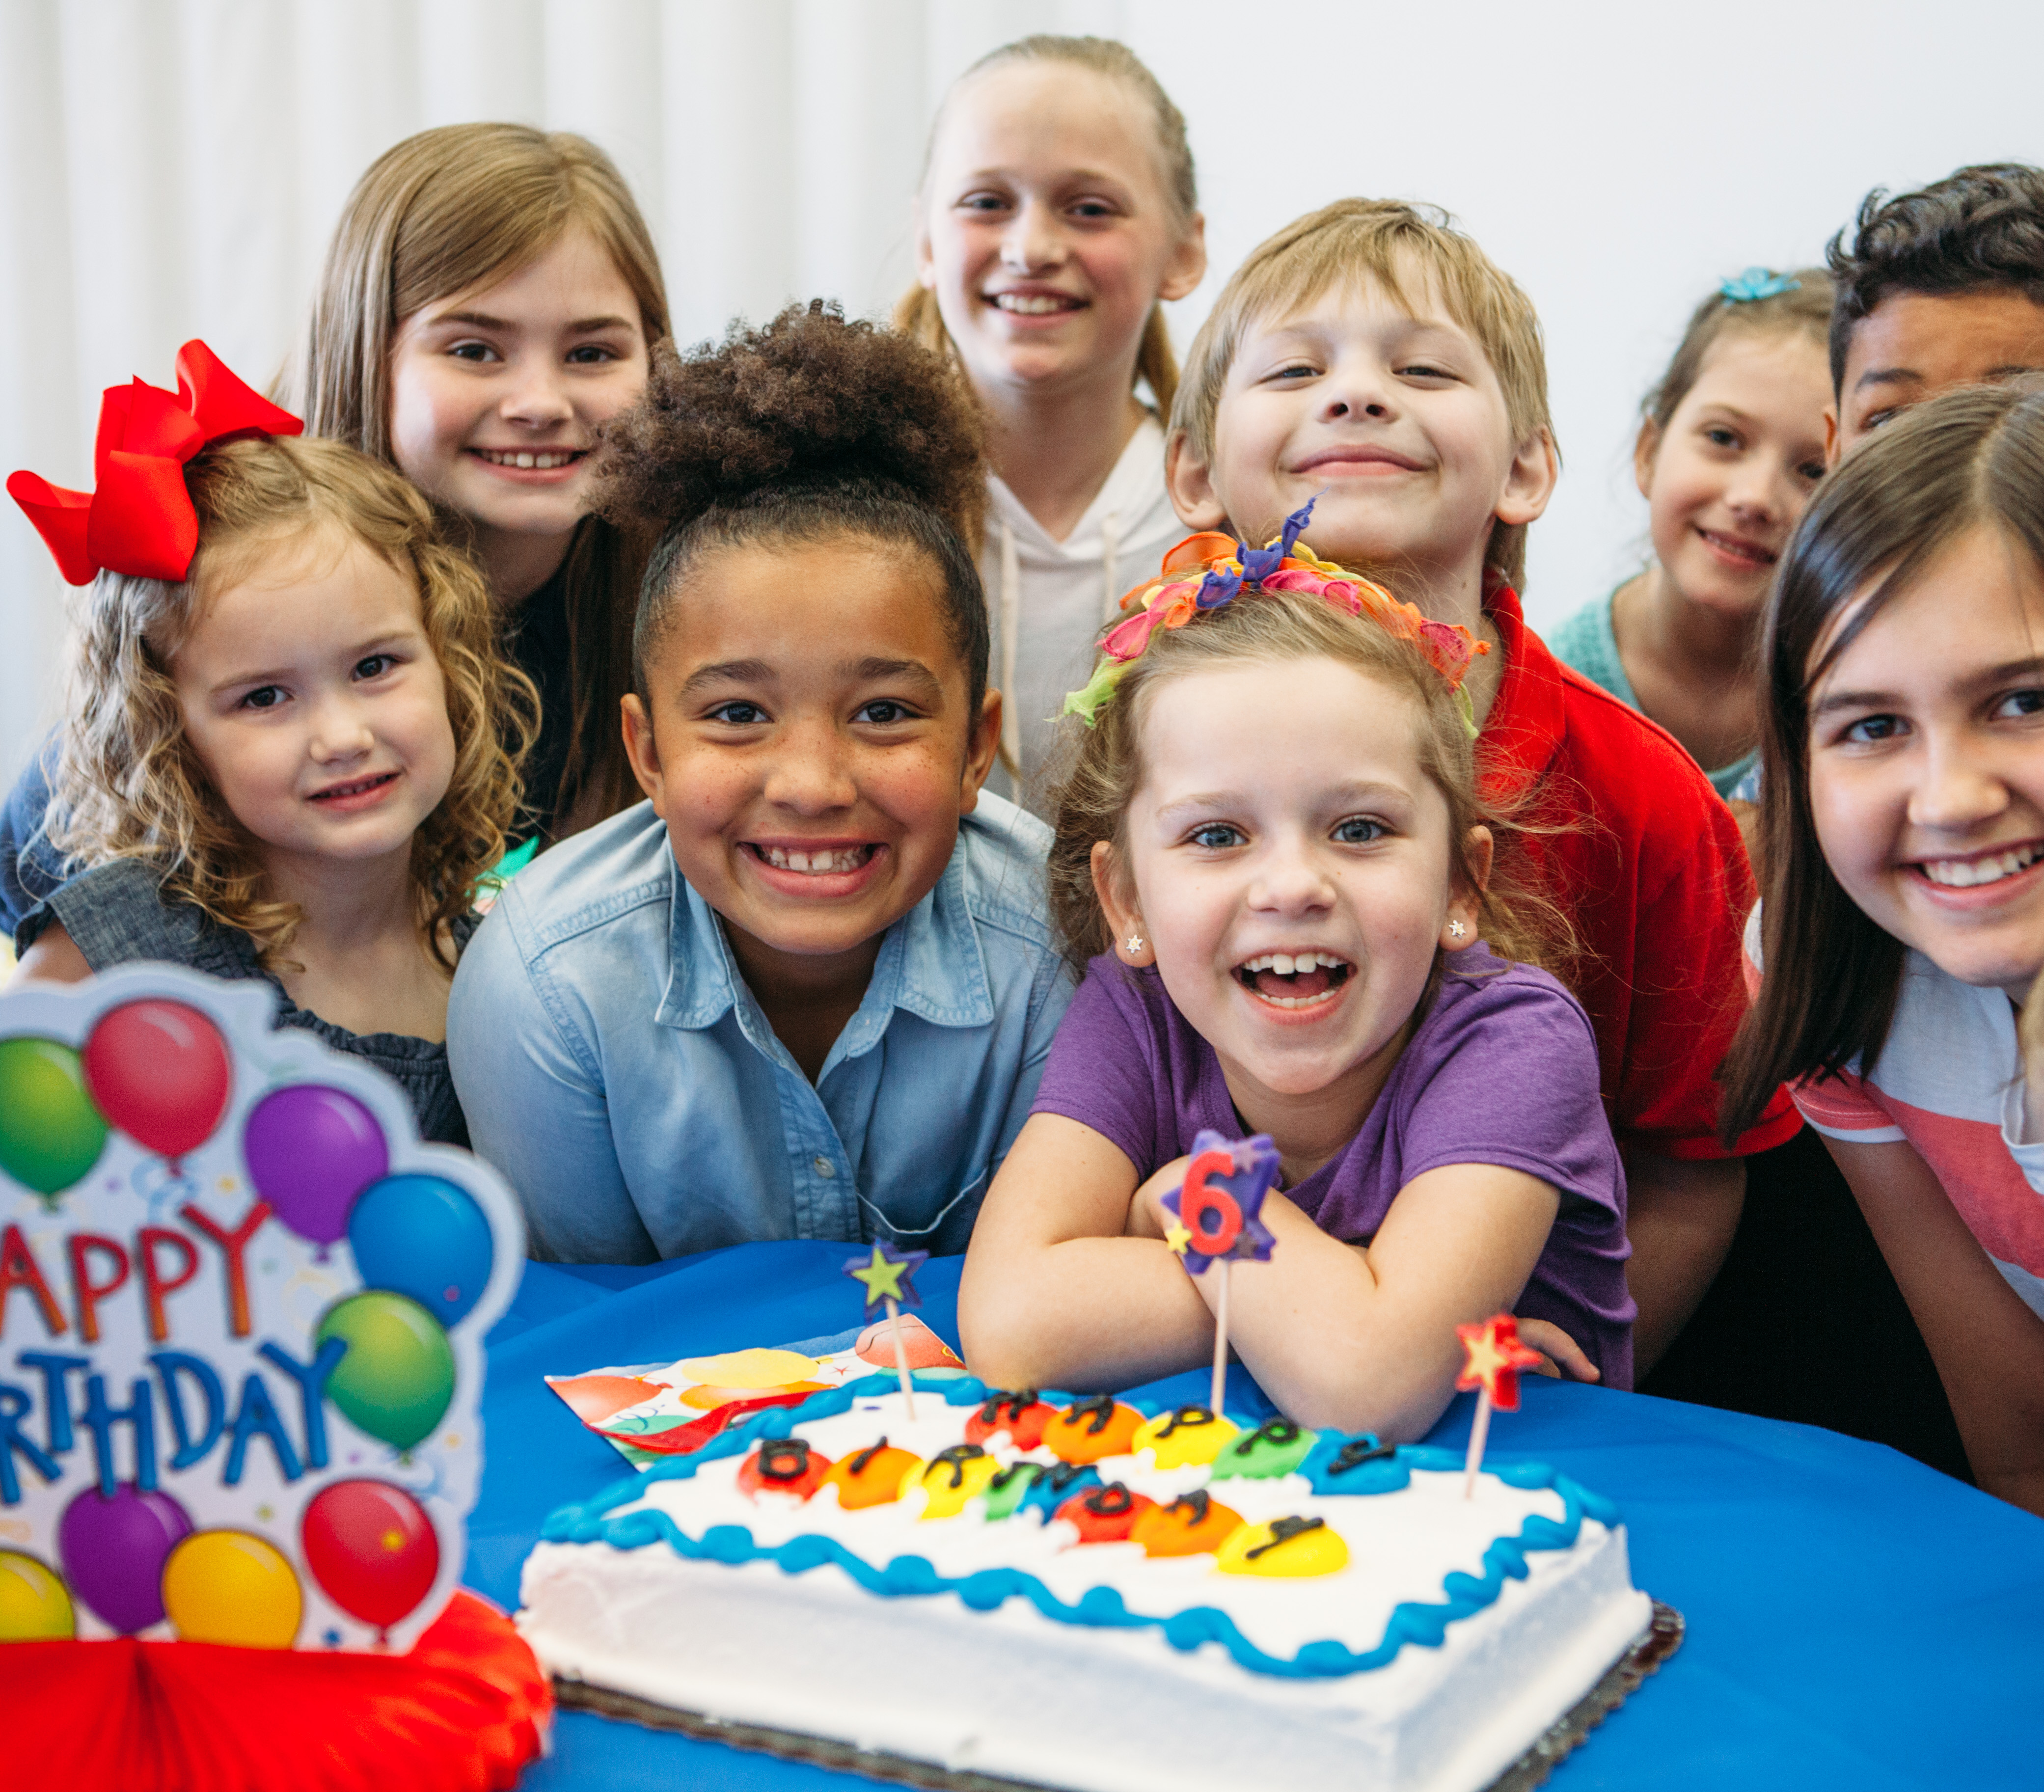 fun activities for kids birthday party ; 041716_0164